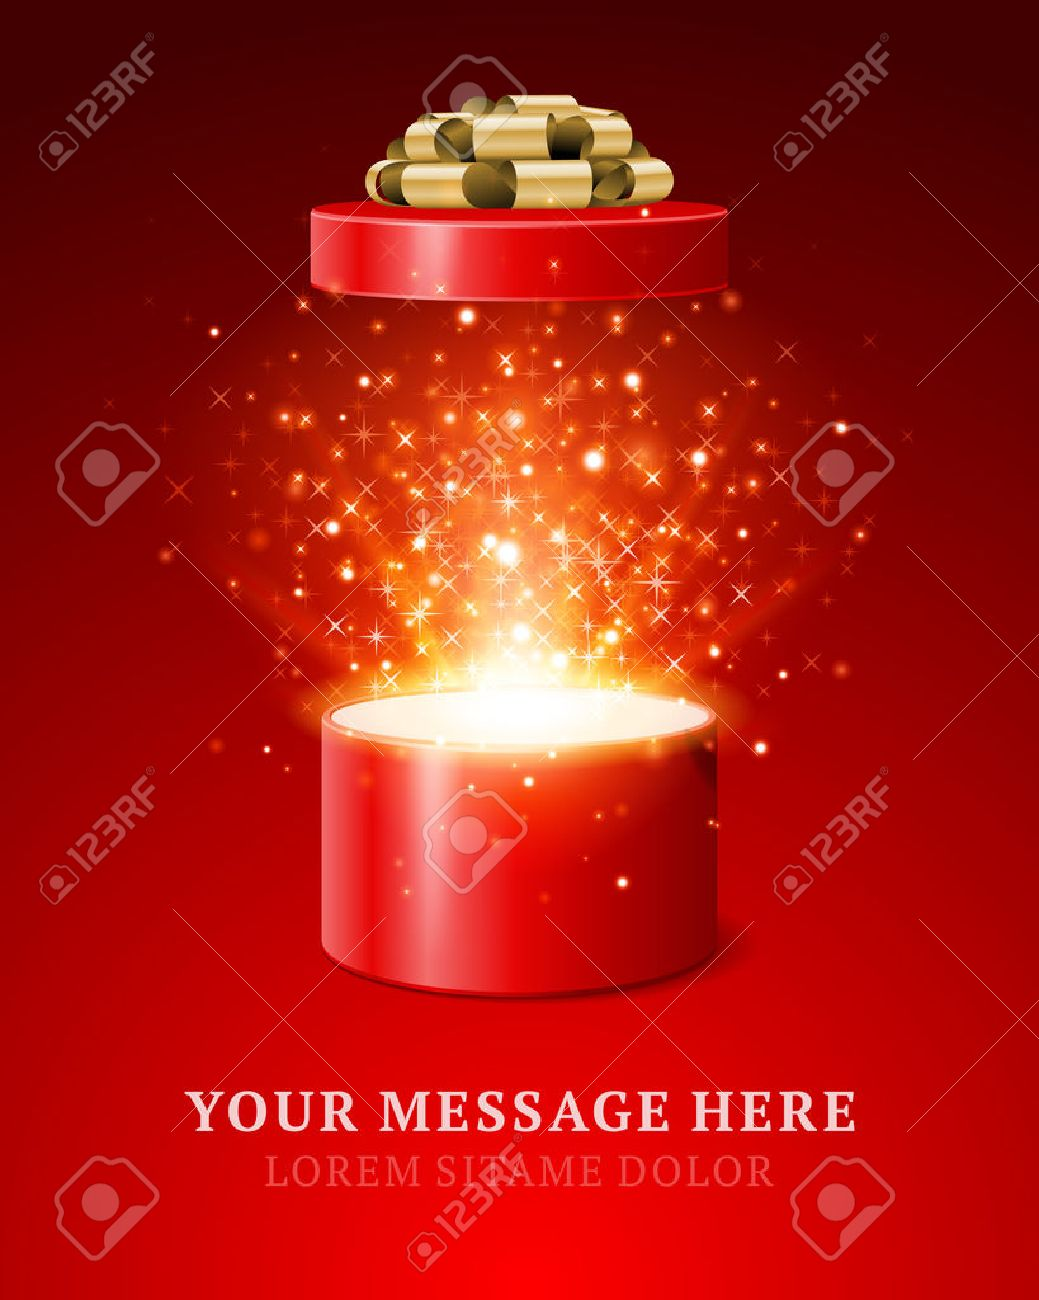 Open gift and light fireworks christmas vector background  Merry Christmas and Happy New Year or Happy Birthday illustration Stock Vector - 22964489